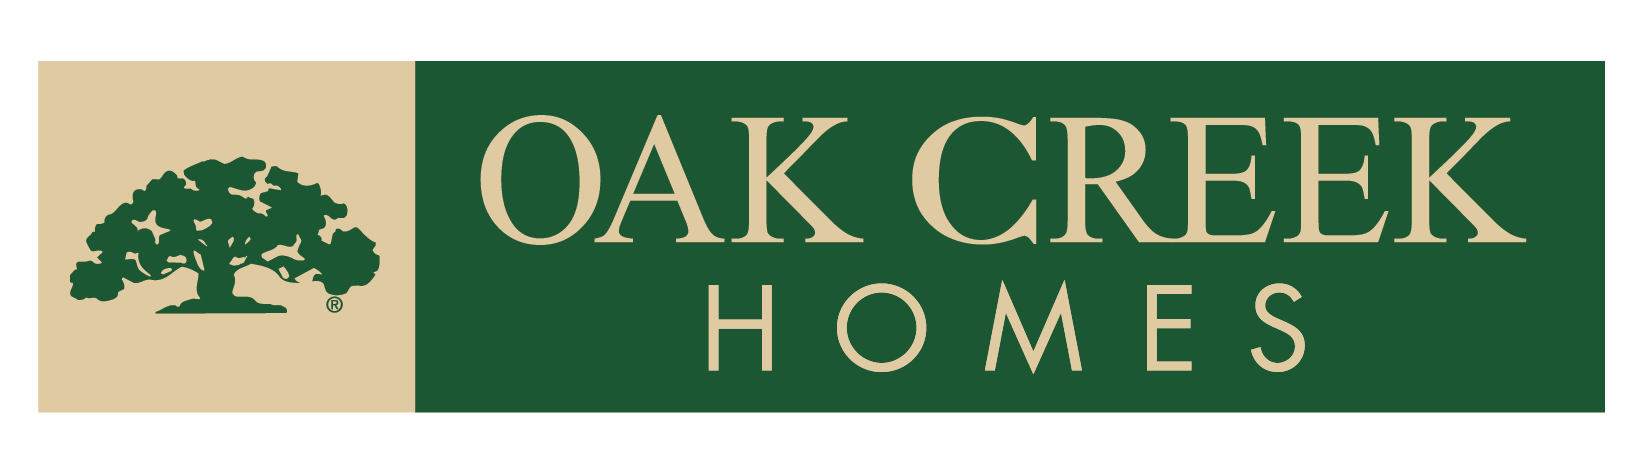 Oak Creek Homes Social